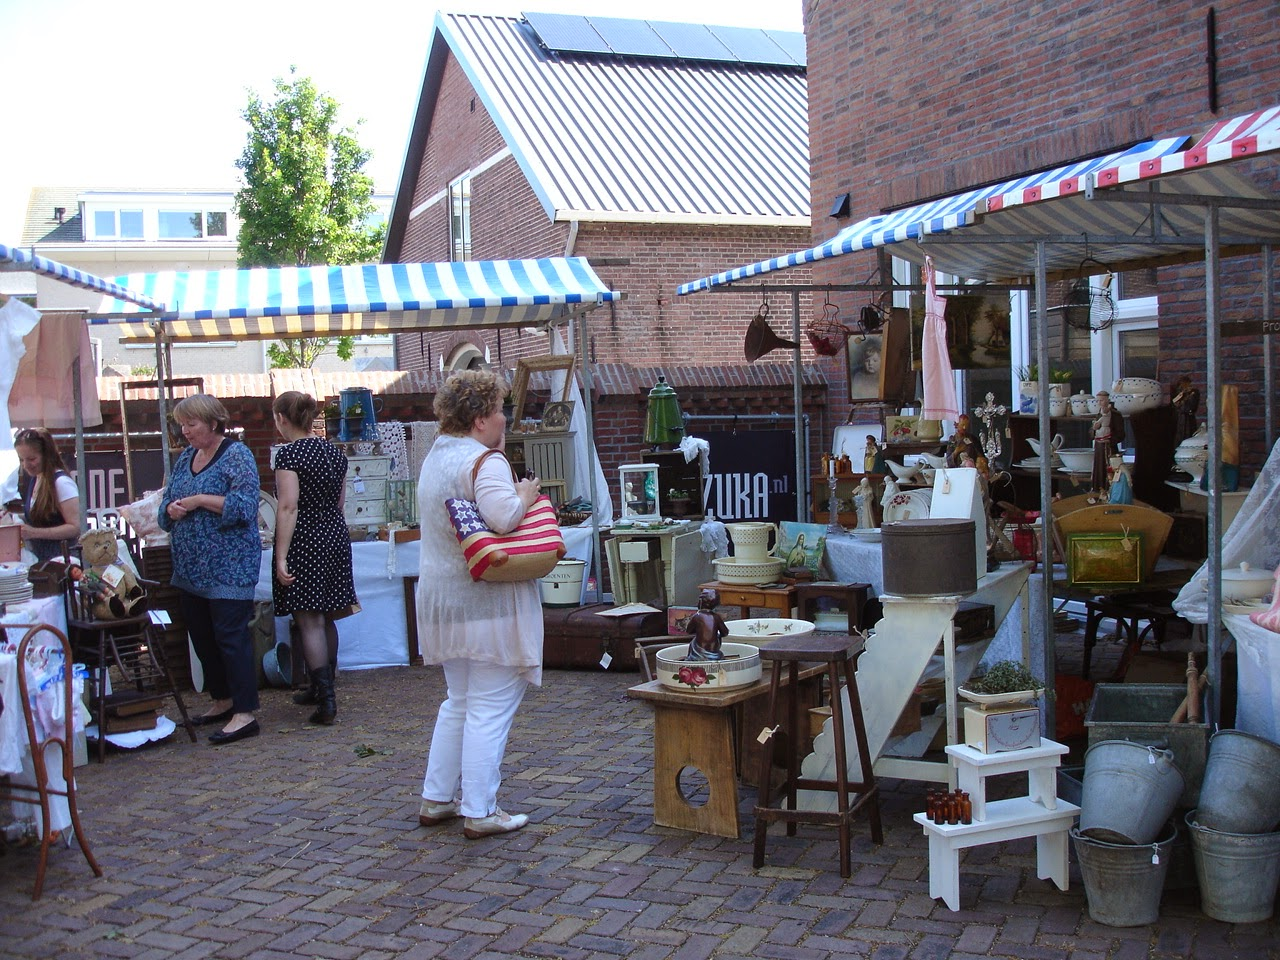 Brocante Charmante Spontanausflug Nach Holland